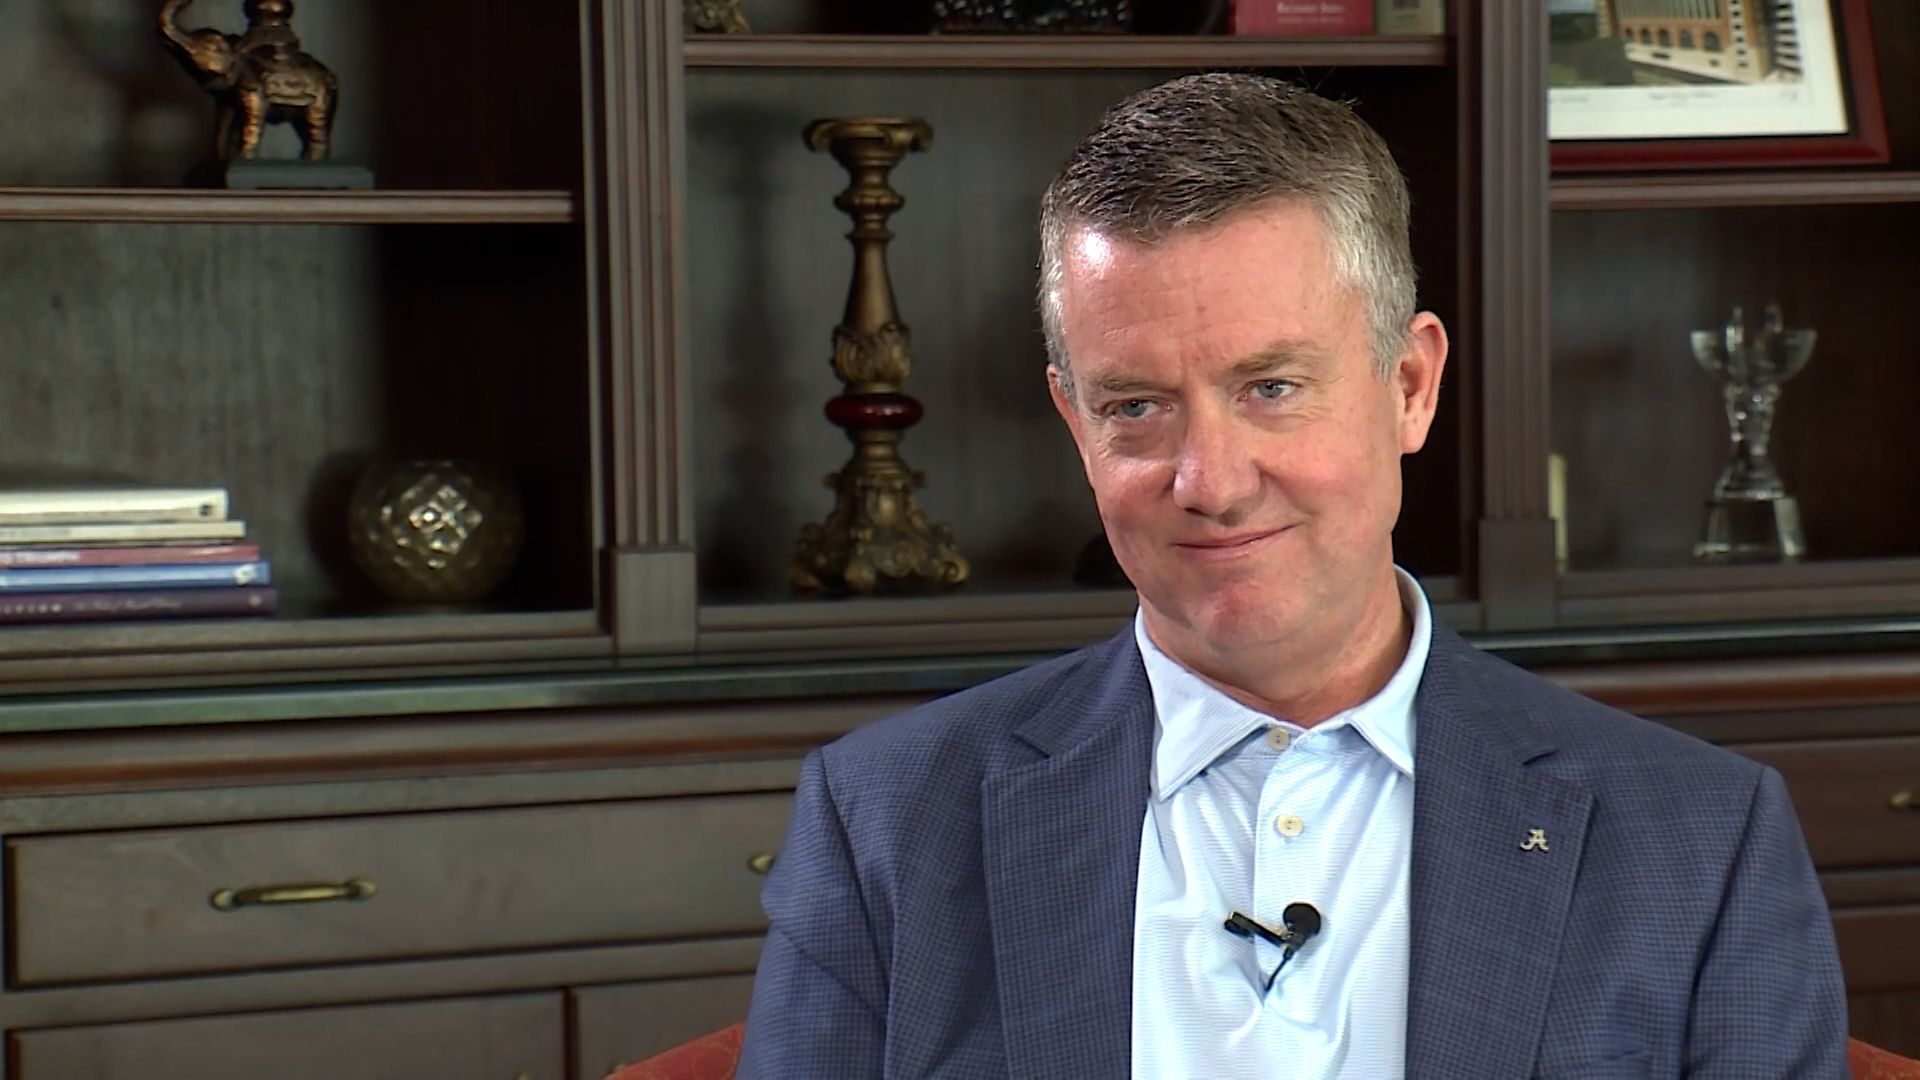 Extended interview with Alabama AD Greg Byrne